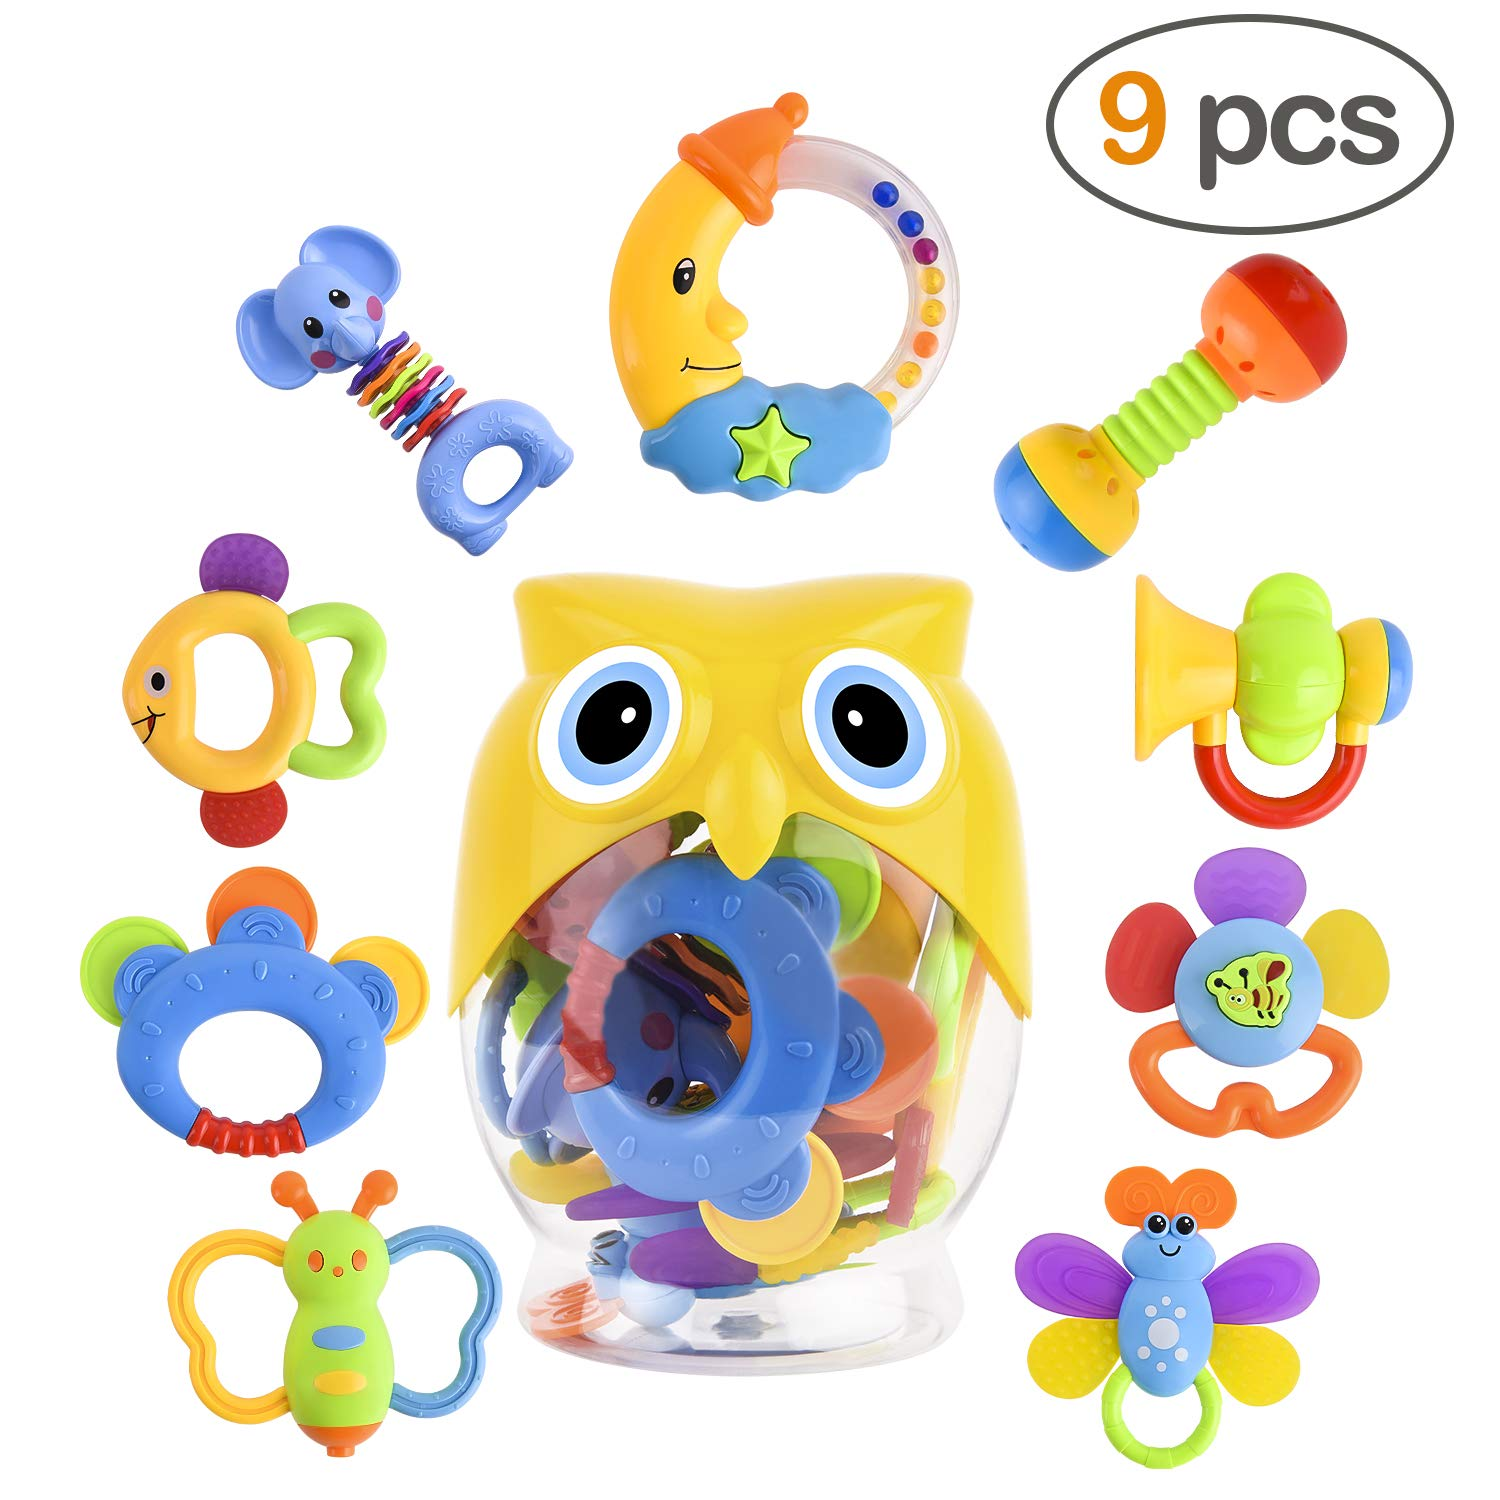 Baby rattle and teether clipart vector freeuse stock GotechoD Baby Rattles Teether 9 pcs Teether Rattle Set Packed in Bottle,  Shaker Grab Rattle Baby Infant Newborn Toys Early Educational Toys for 3,  6, ... vector freeuse stock